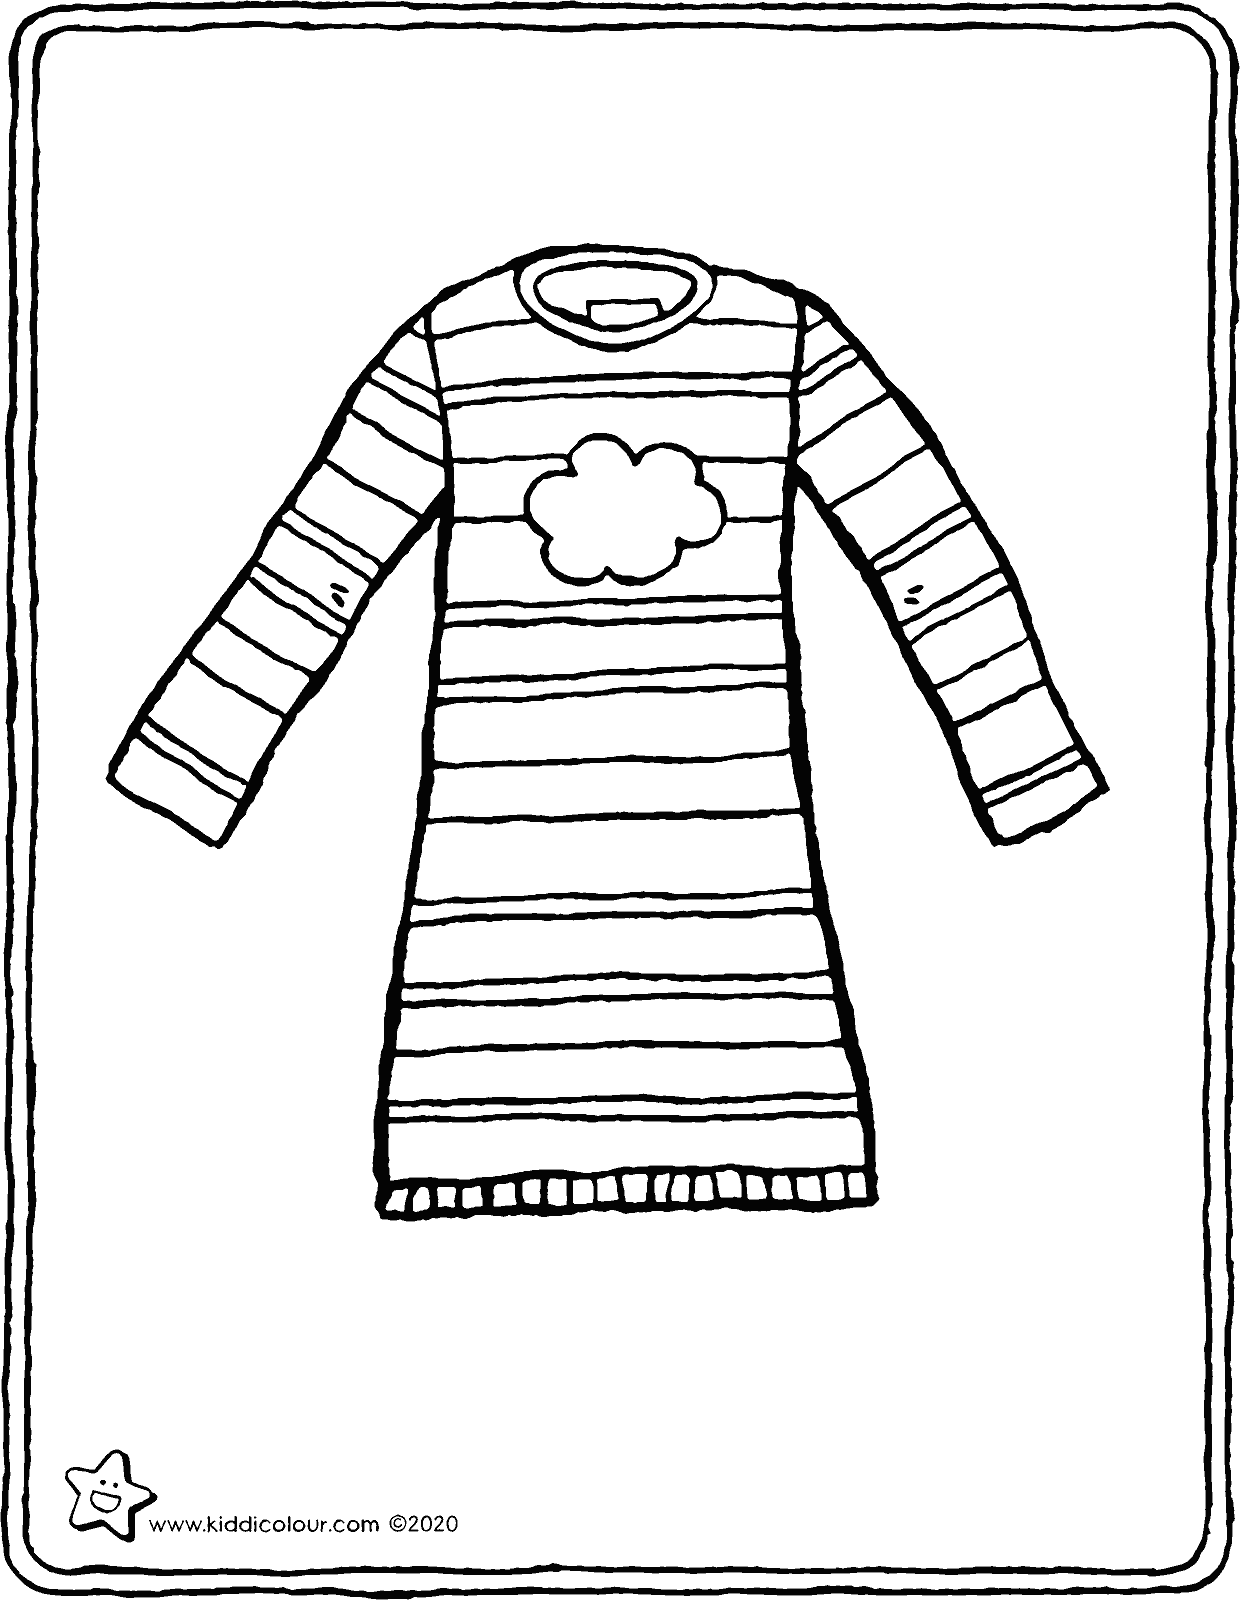 nightdress colouring page drawing picture 01V